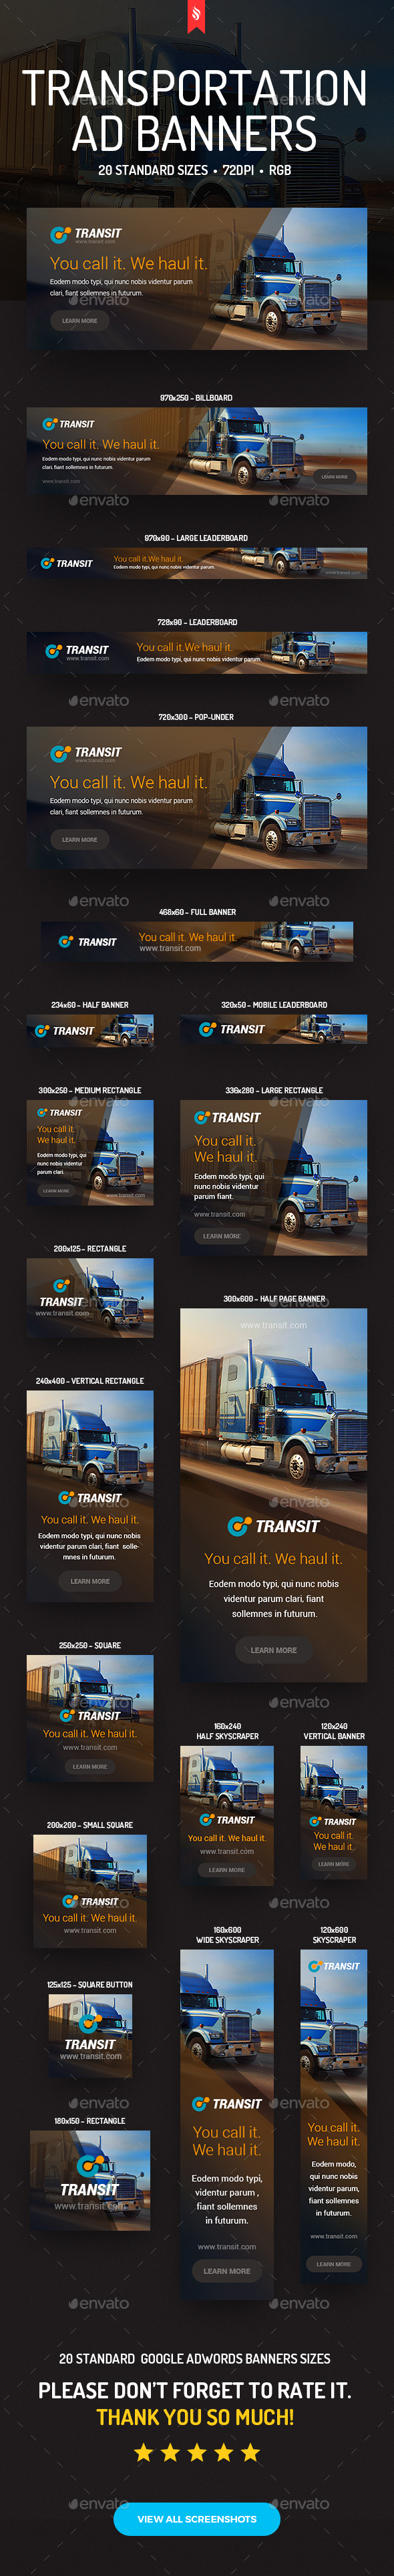 Transit - Transportation Ad Banners - Banners & Ads Web Elements